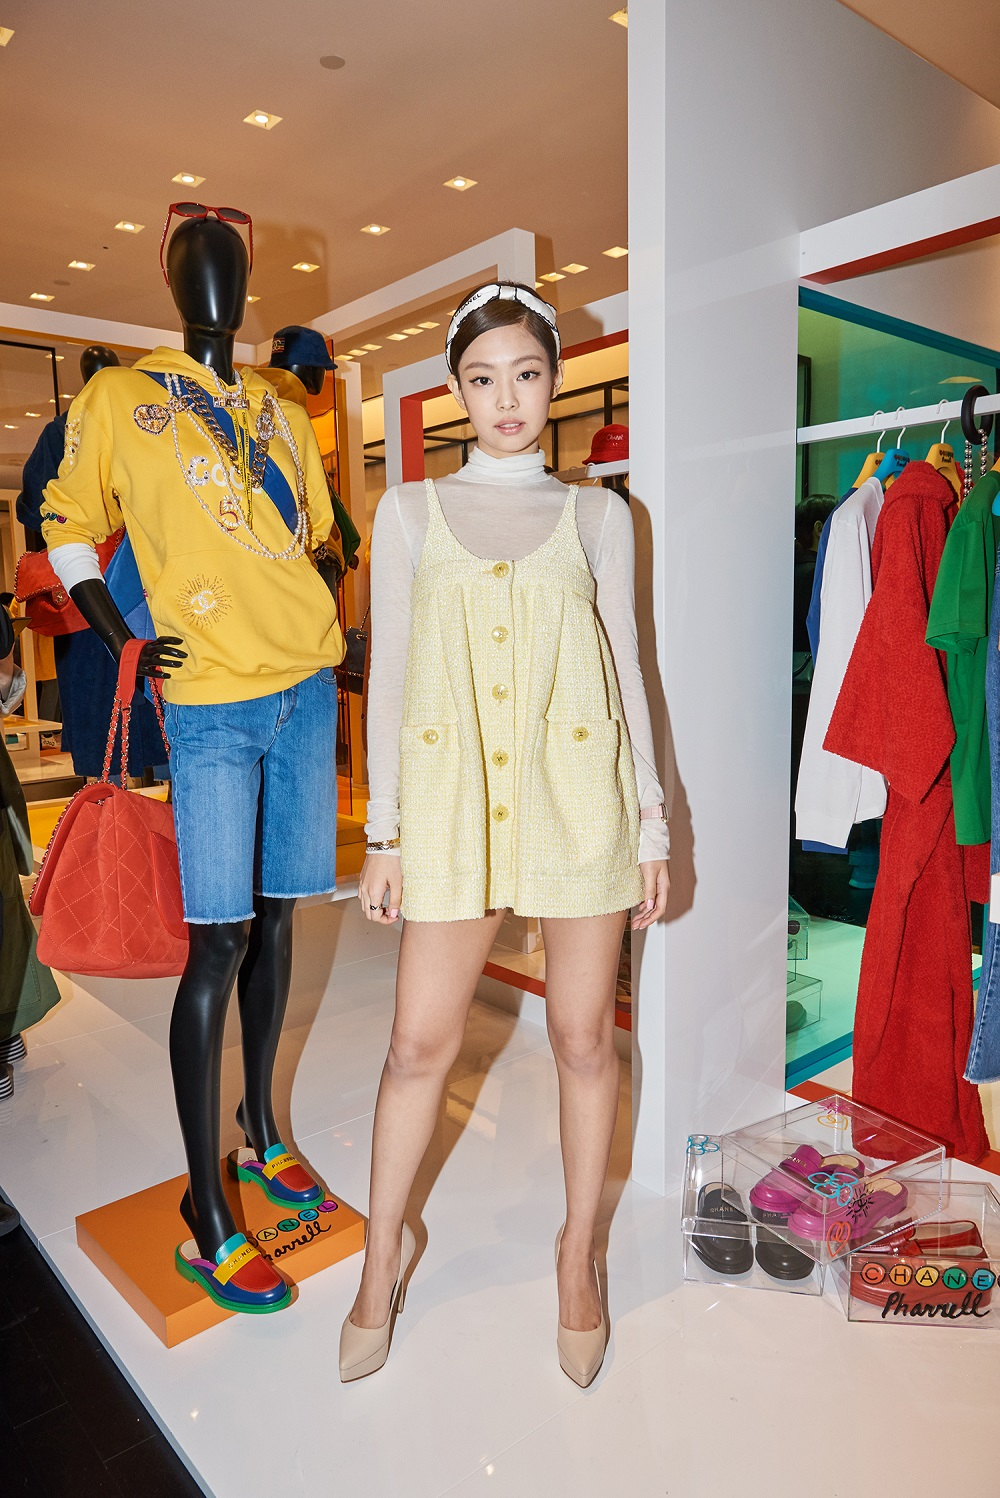 Jennie Kim wore a yellow tweed top (look 42 from the Spring-Summer 2019 Ready-to-Wear) and CHANEL accessories.